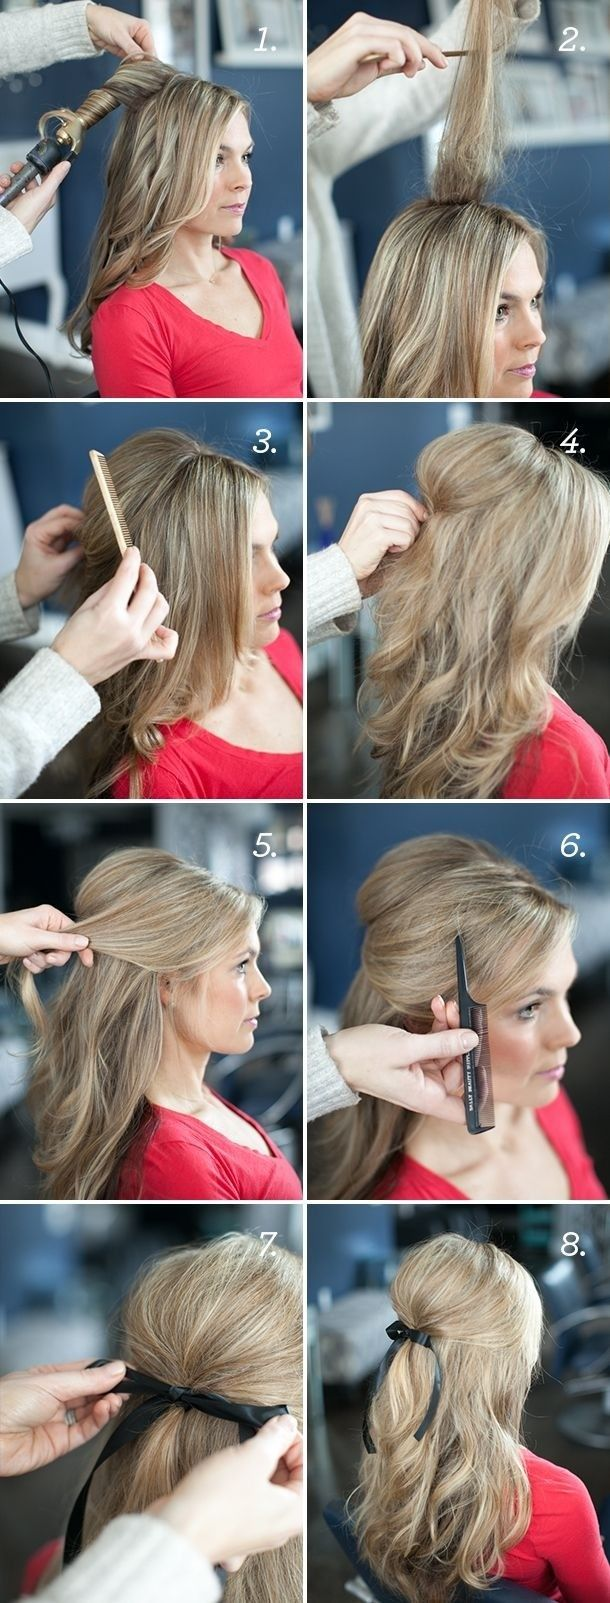 hottest wedding hairstyles tutorials for brides and bridesmaids